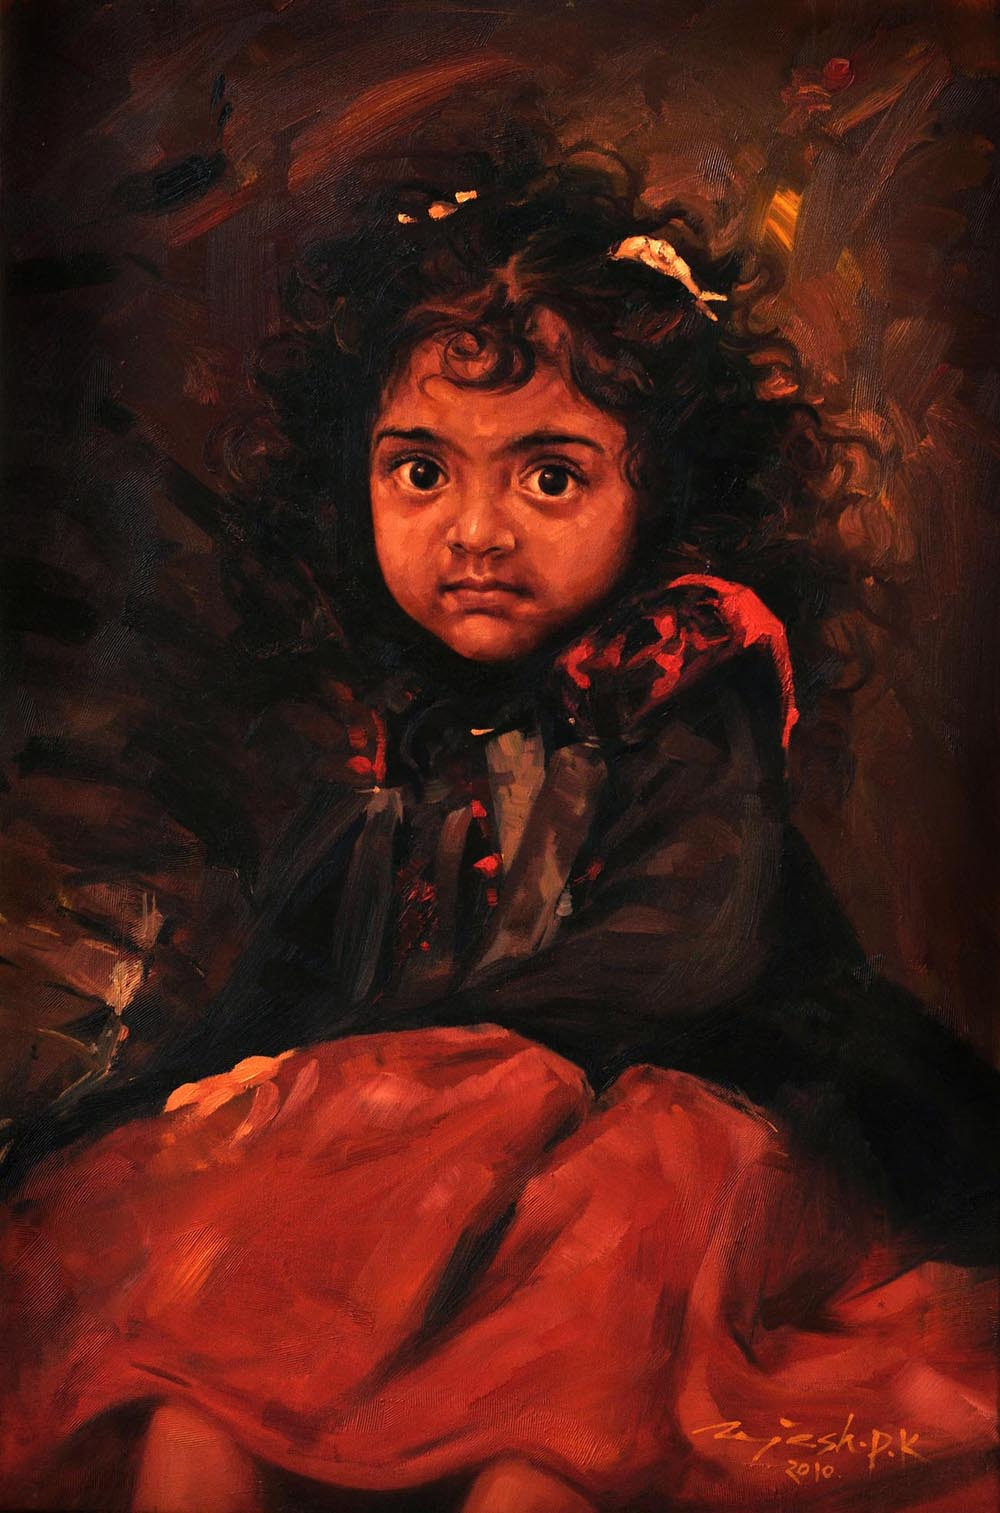 Shayona  Oil on Canvas - 36x24 inches - 2010